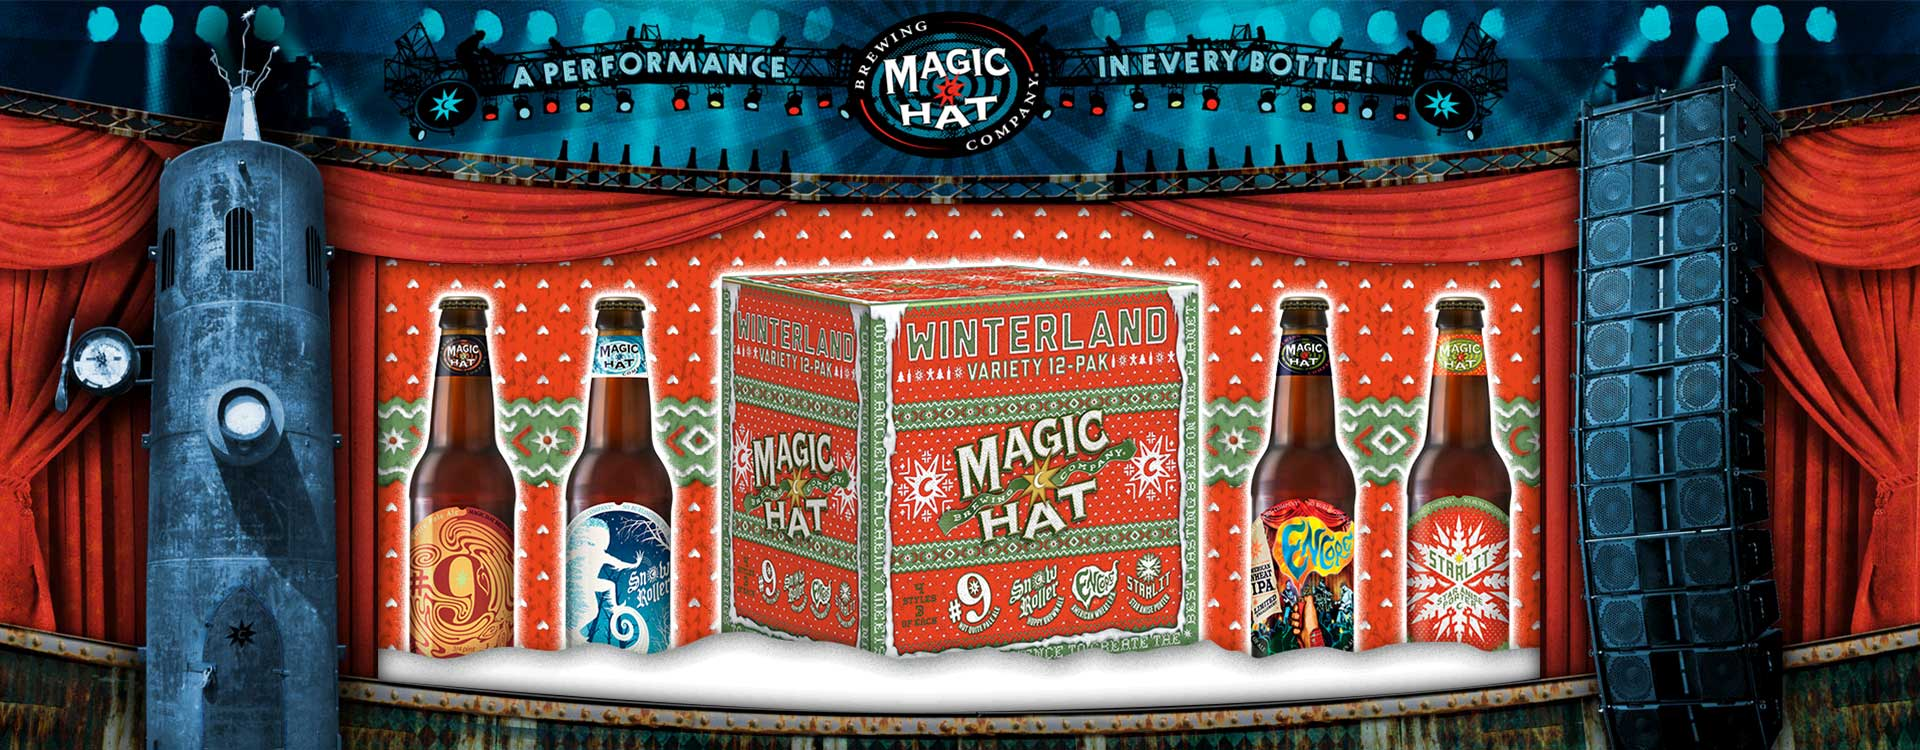 Magic Hat Variety Pack on a Climax Machine